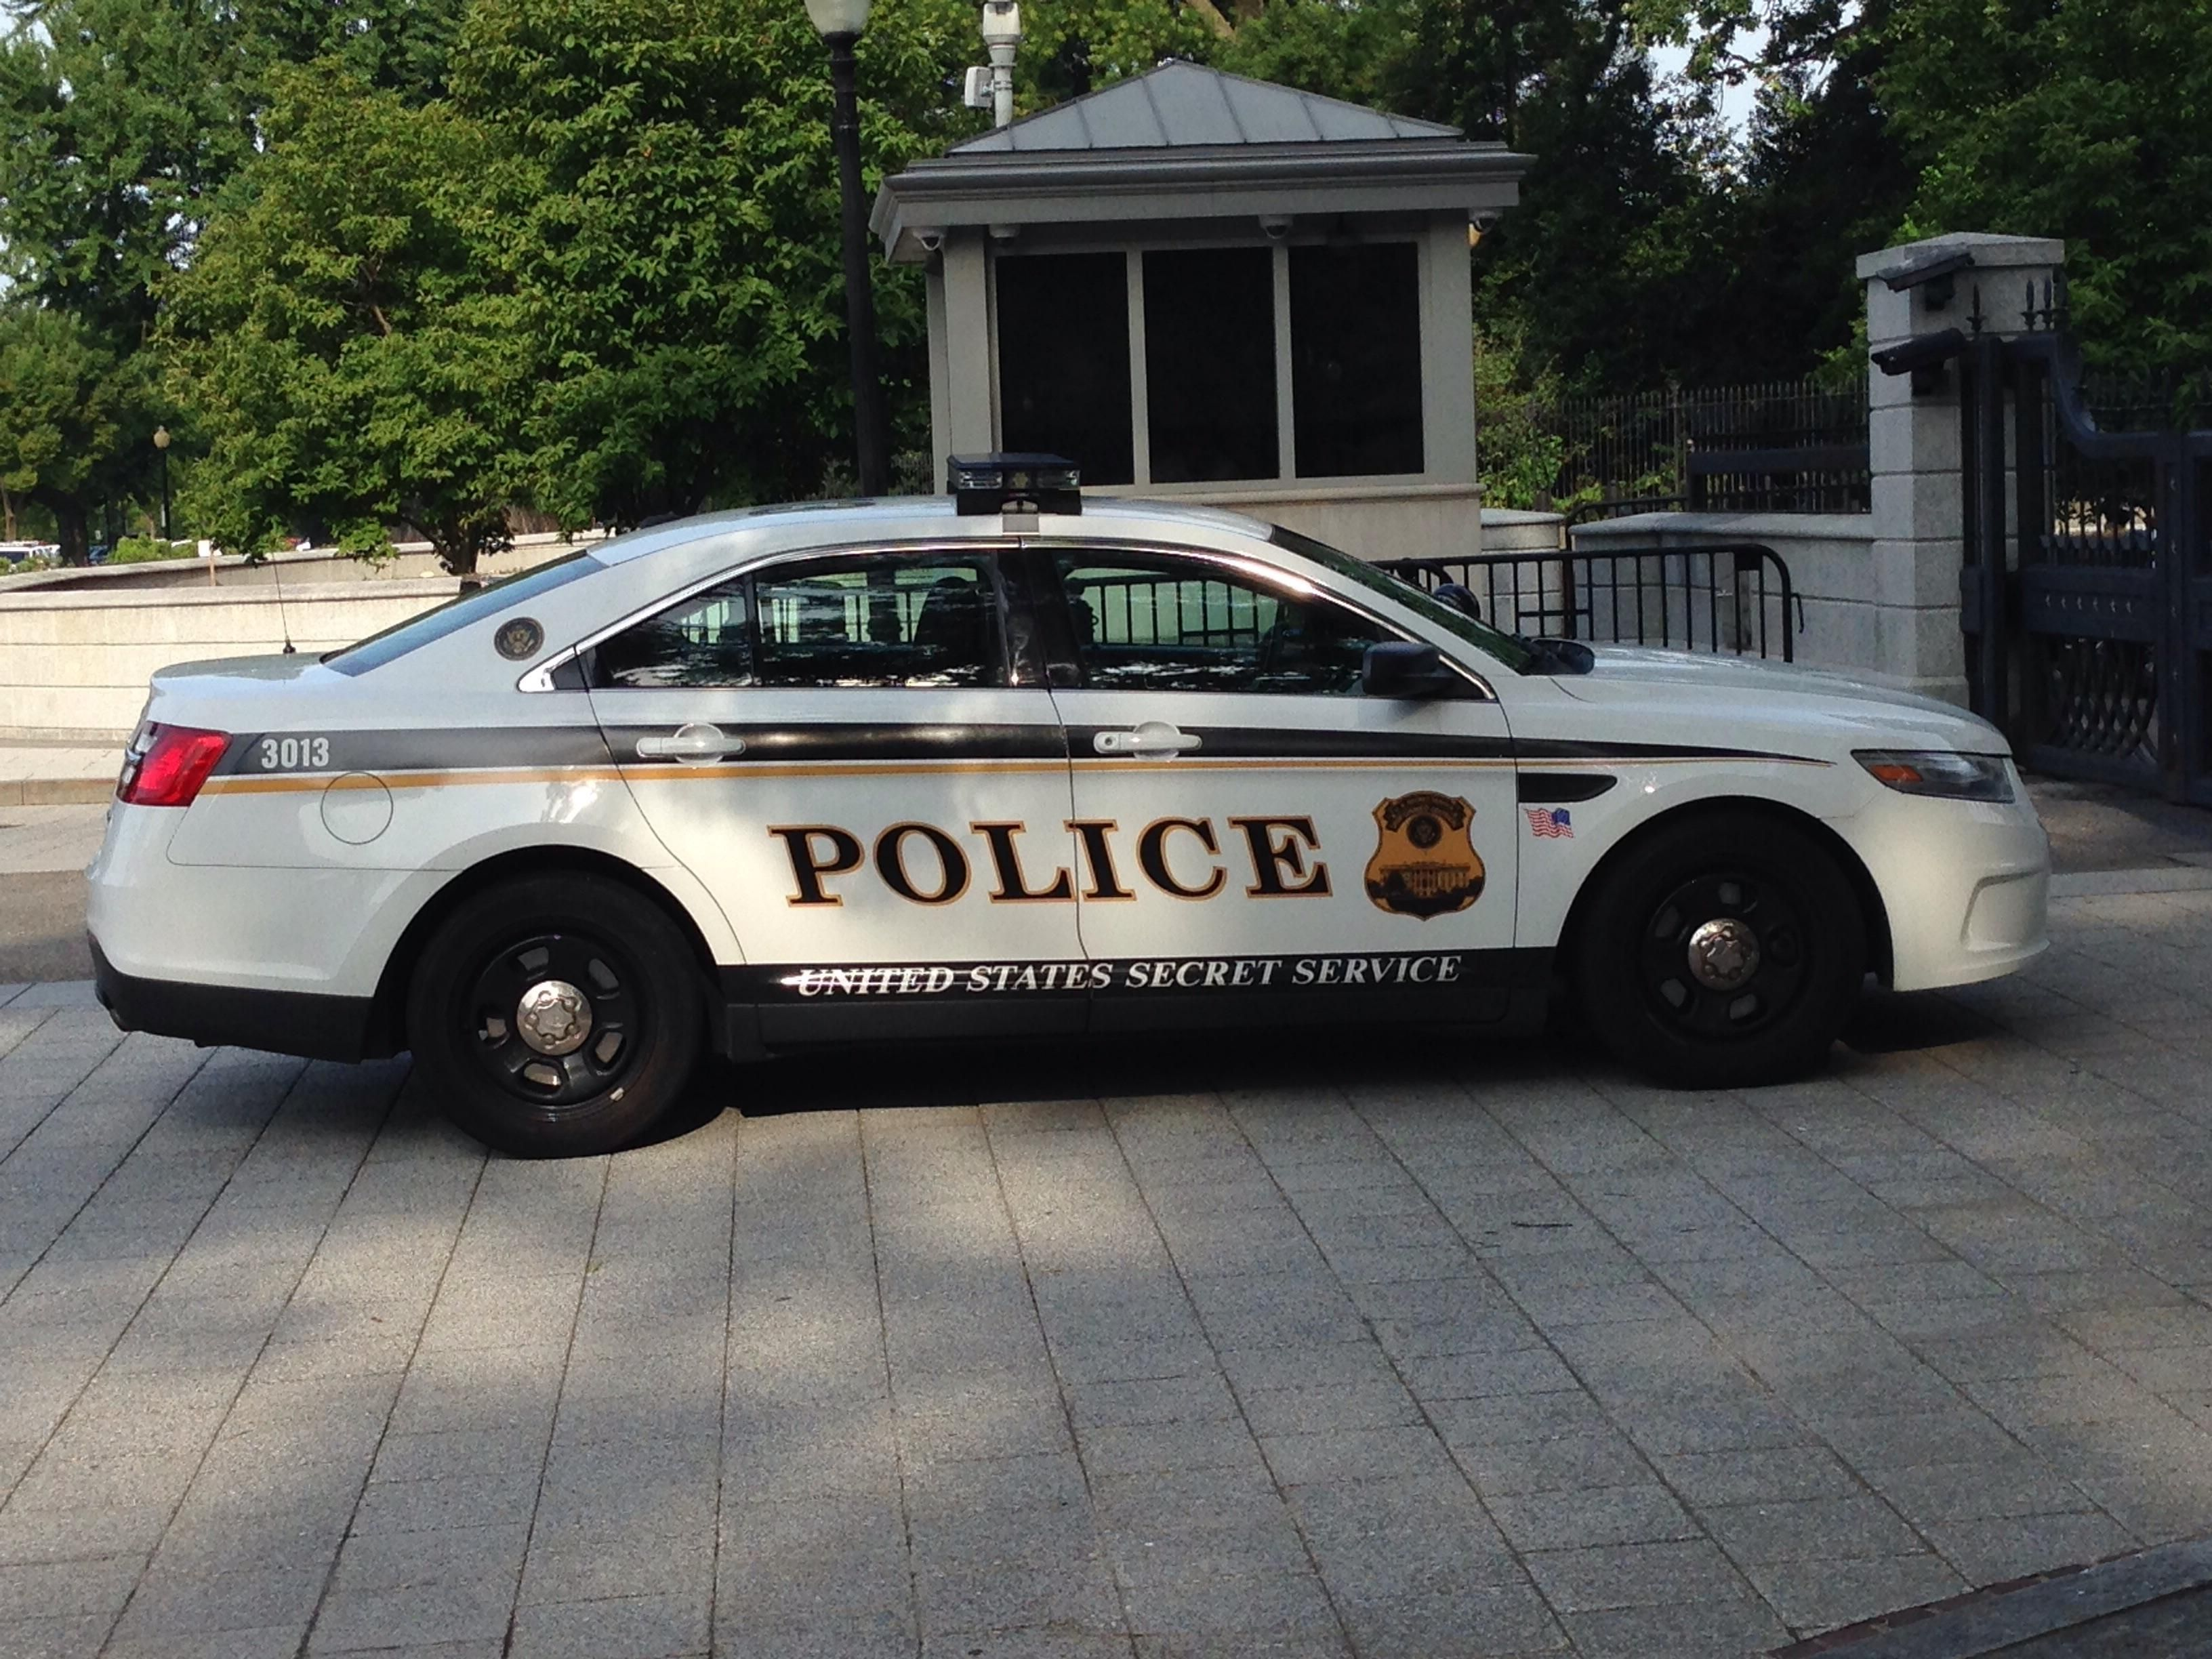 United states secret service police ford police interceptor dc